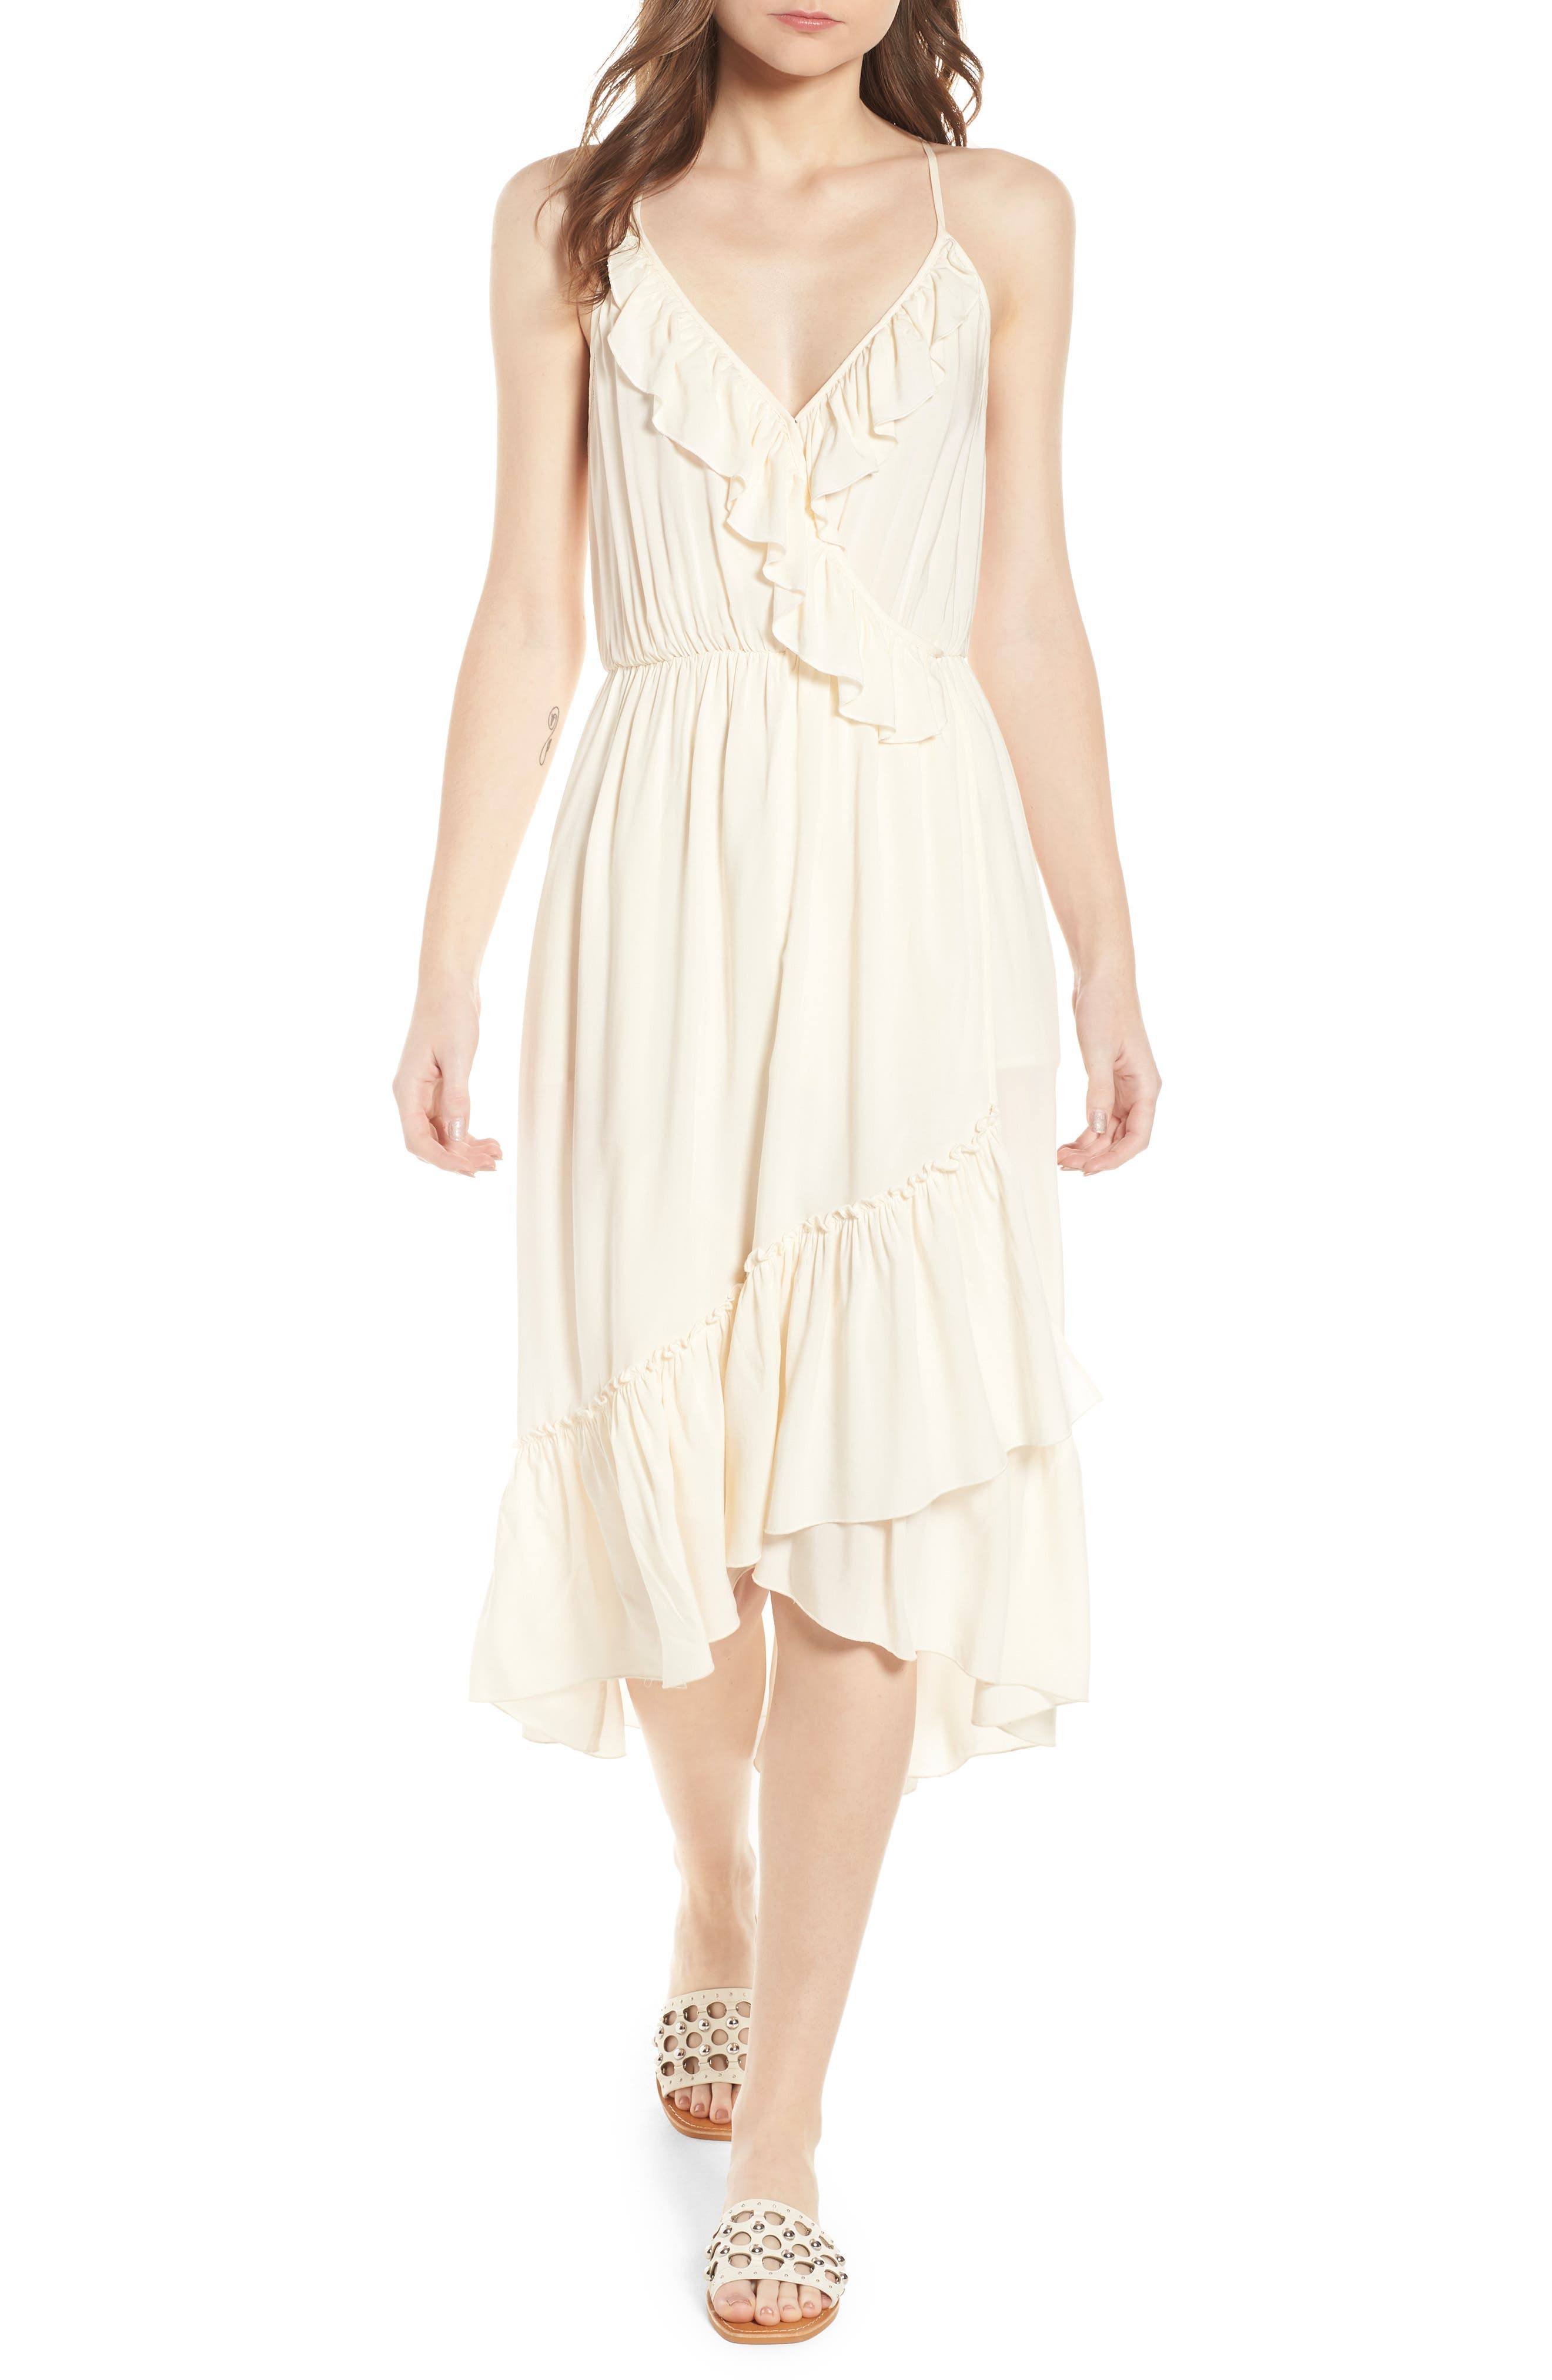 Wrap Style Midi Dress,                             Main thumbnail 1, color,                             COLOR 01 OFF WHITE